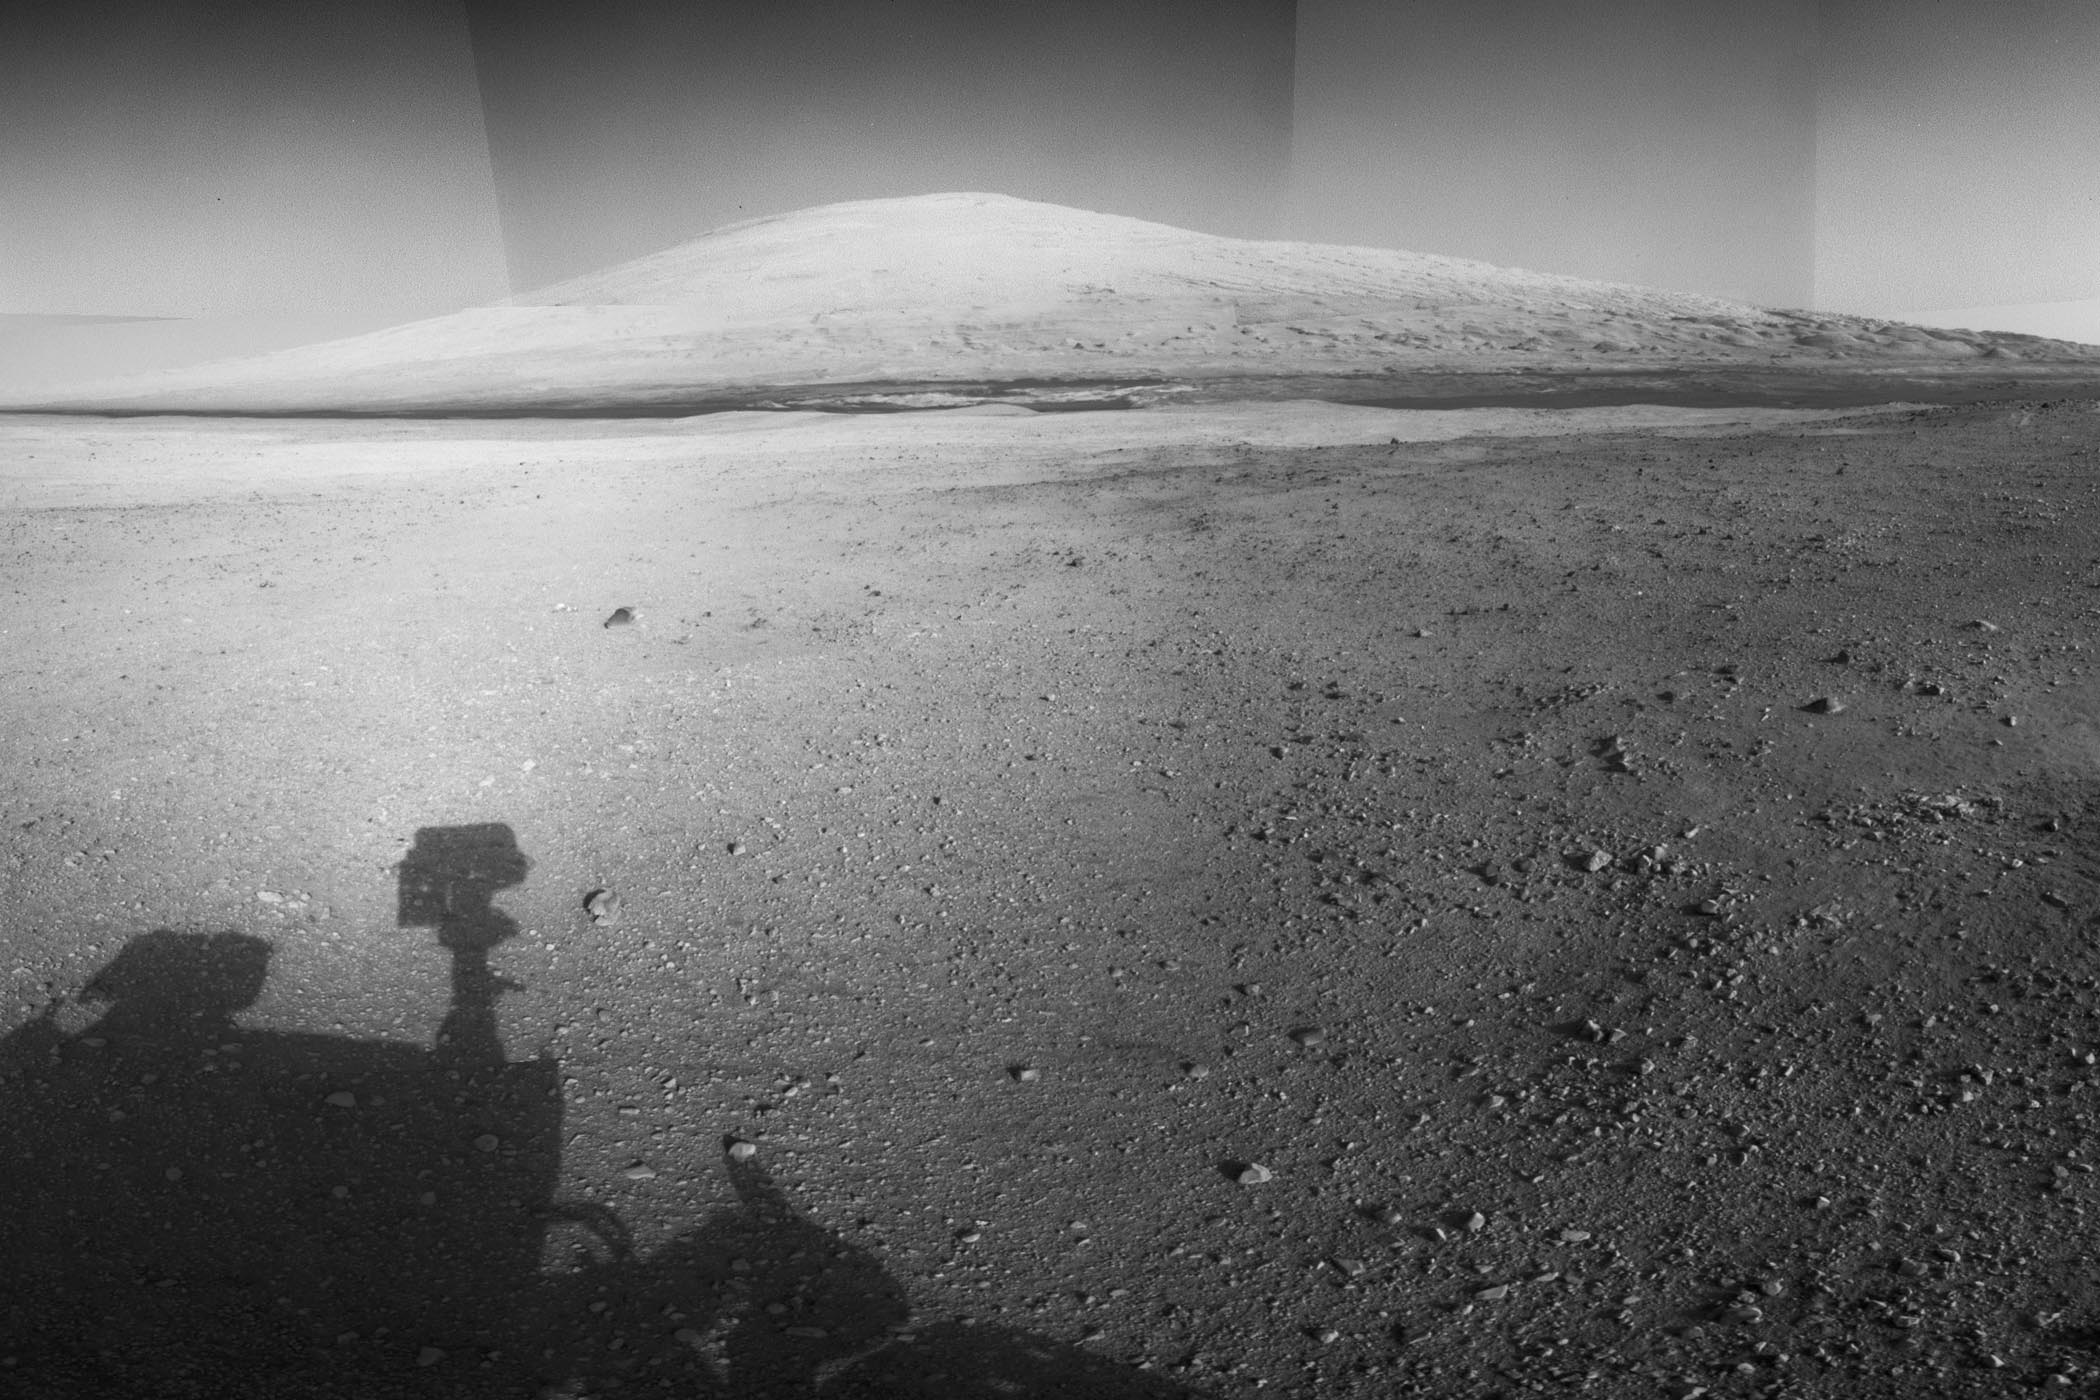 The highest point on Mount Sharp is visible from the Curiosity rover on Aug. 18, 2012. The Martian mountain rises 3.4 miles above the floor of Gale Crater. Geological deposits near the base of Mount Sharp are the destination of Curiosity's Mars mission.